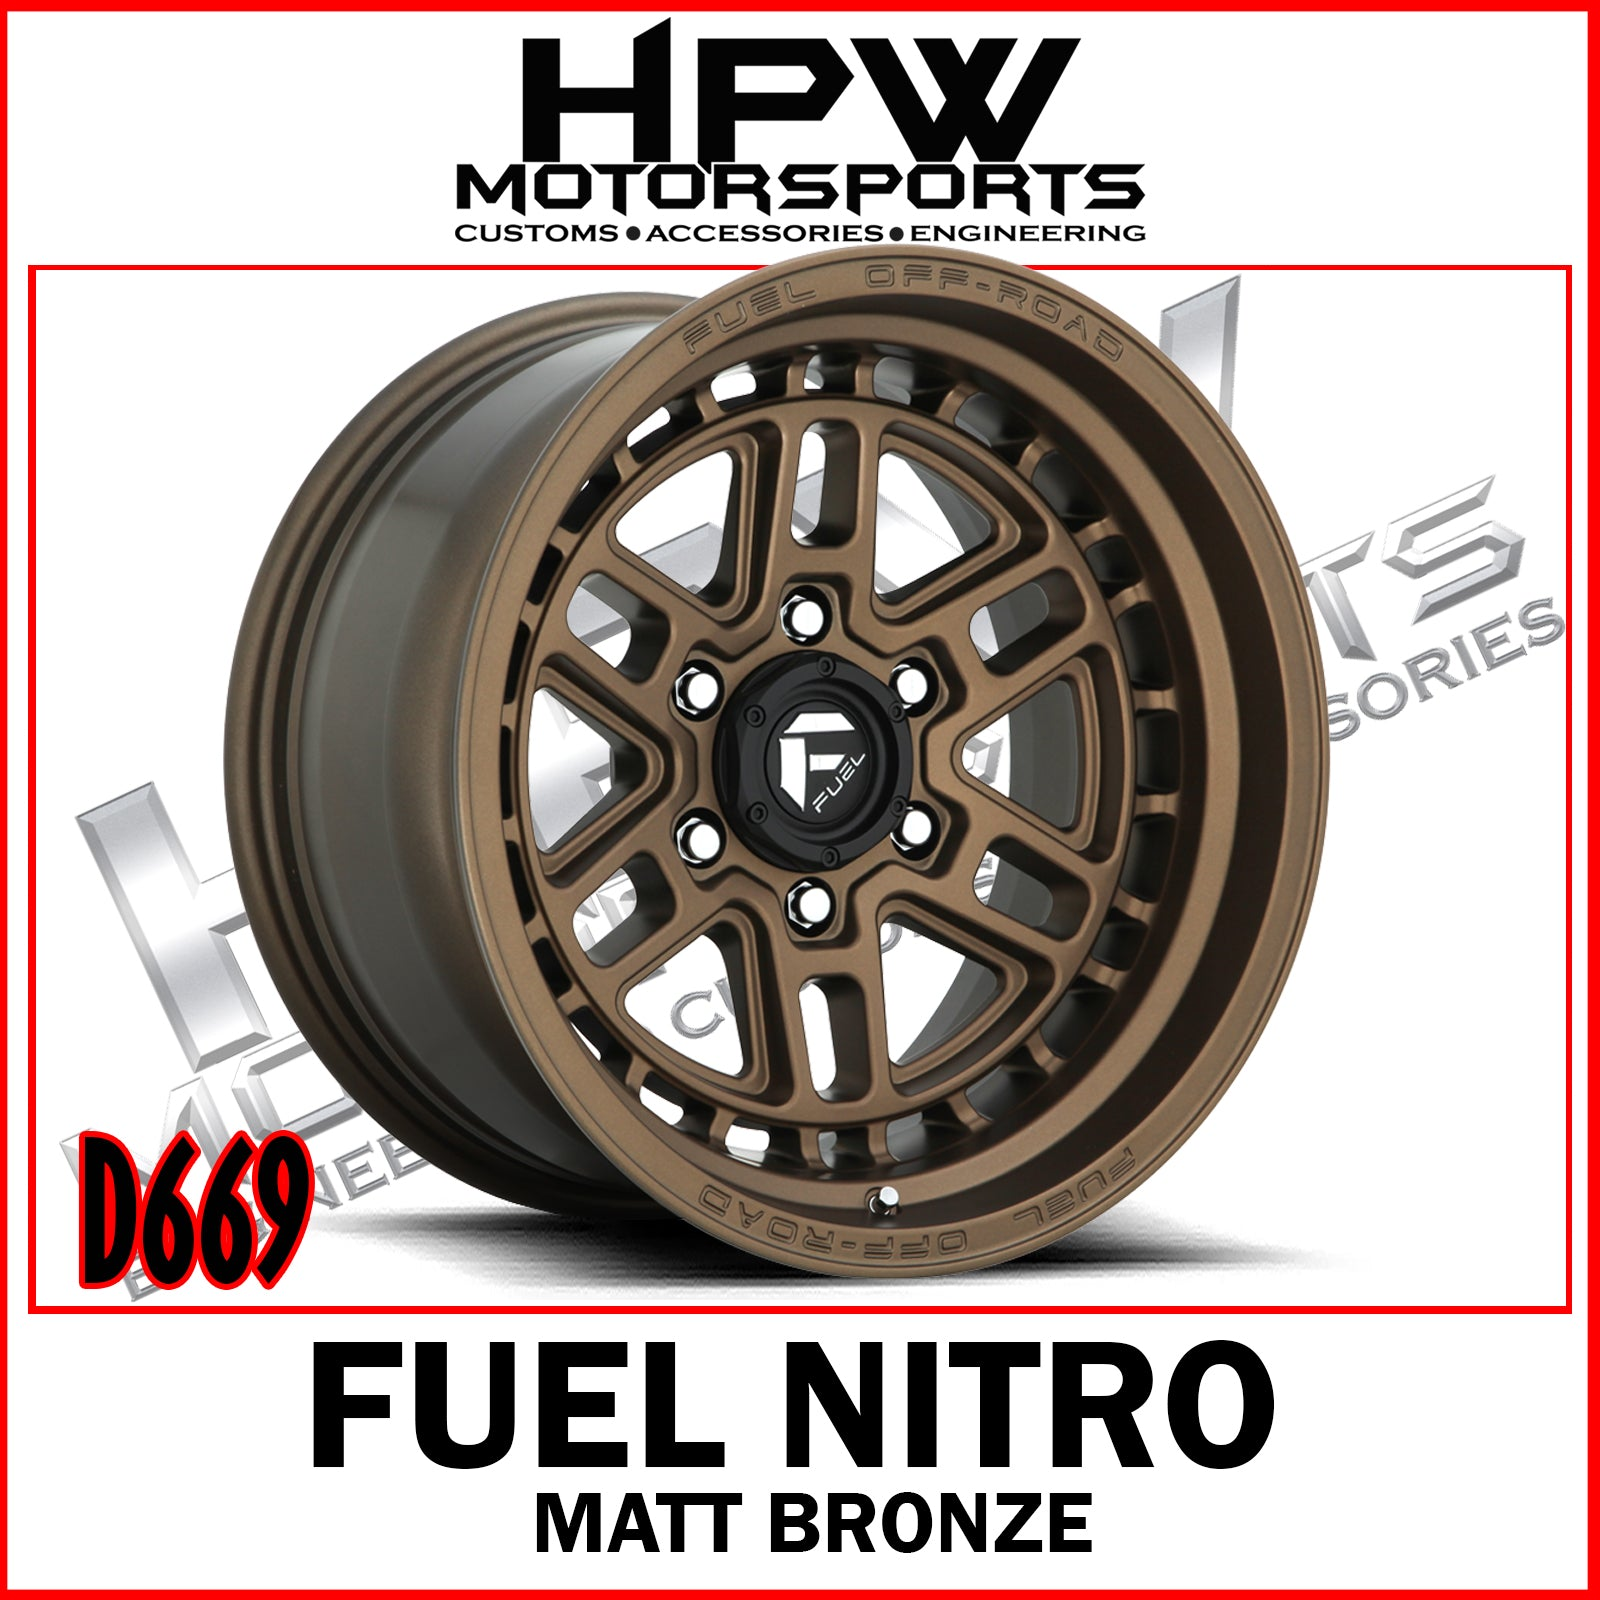 D669 FUEL NITRO - MATT BRONZE - Set of 4